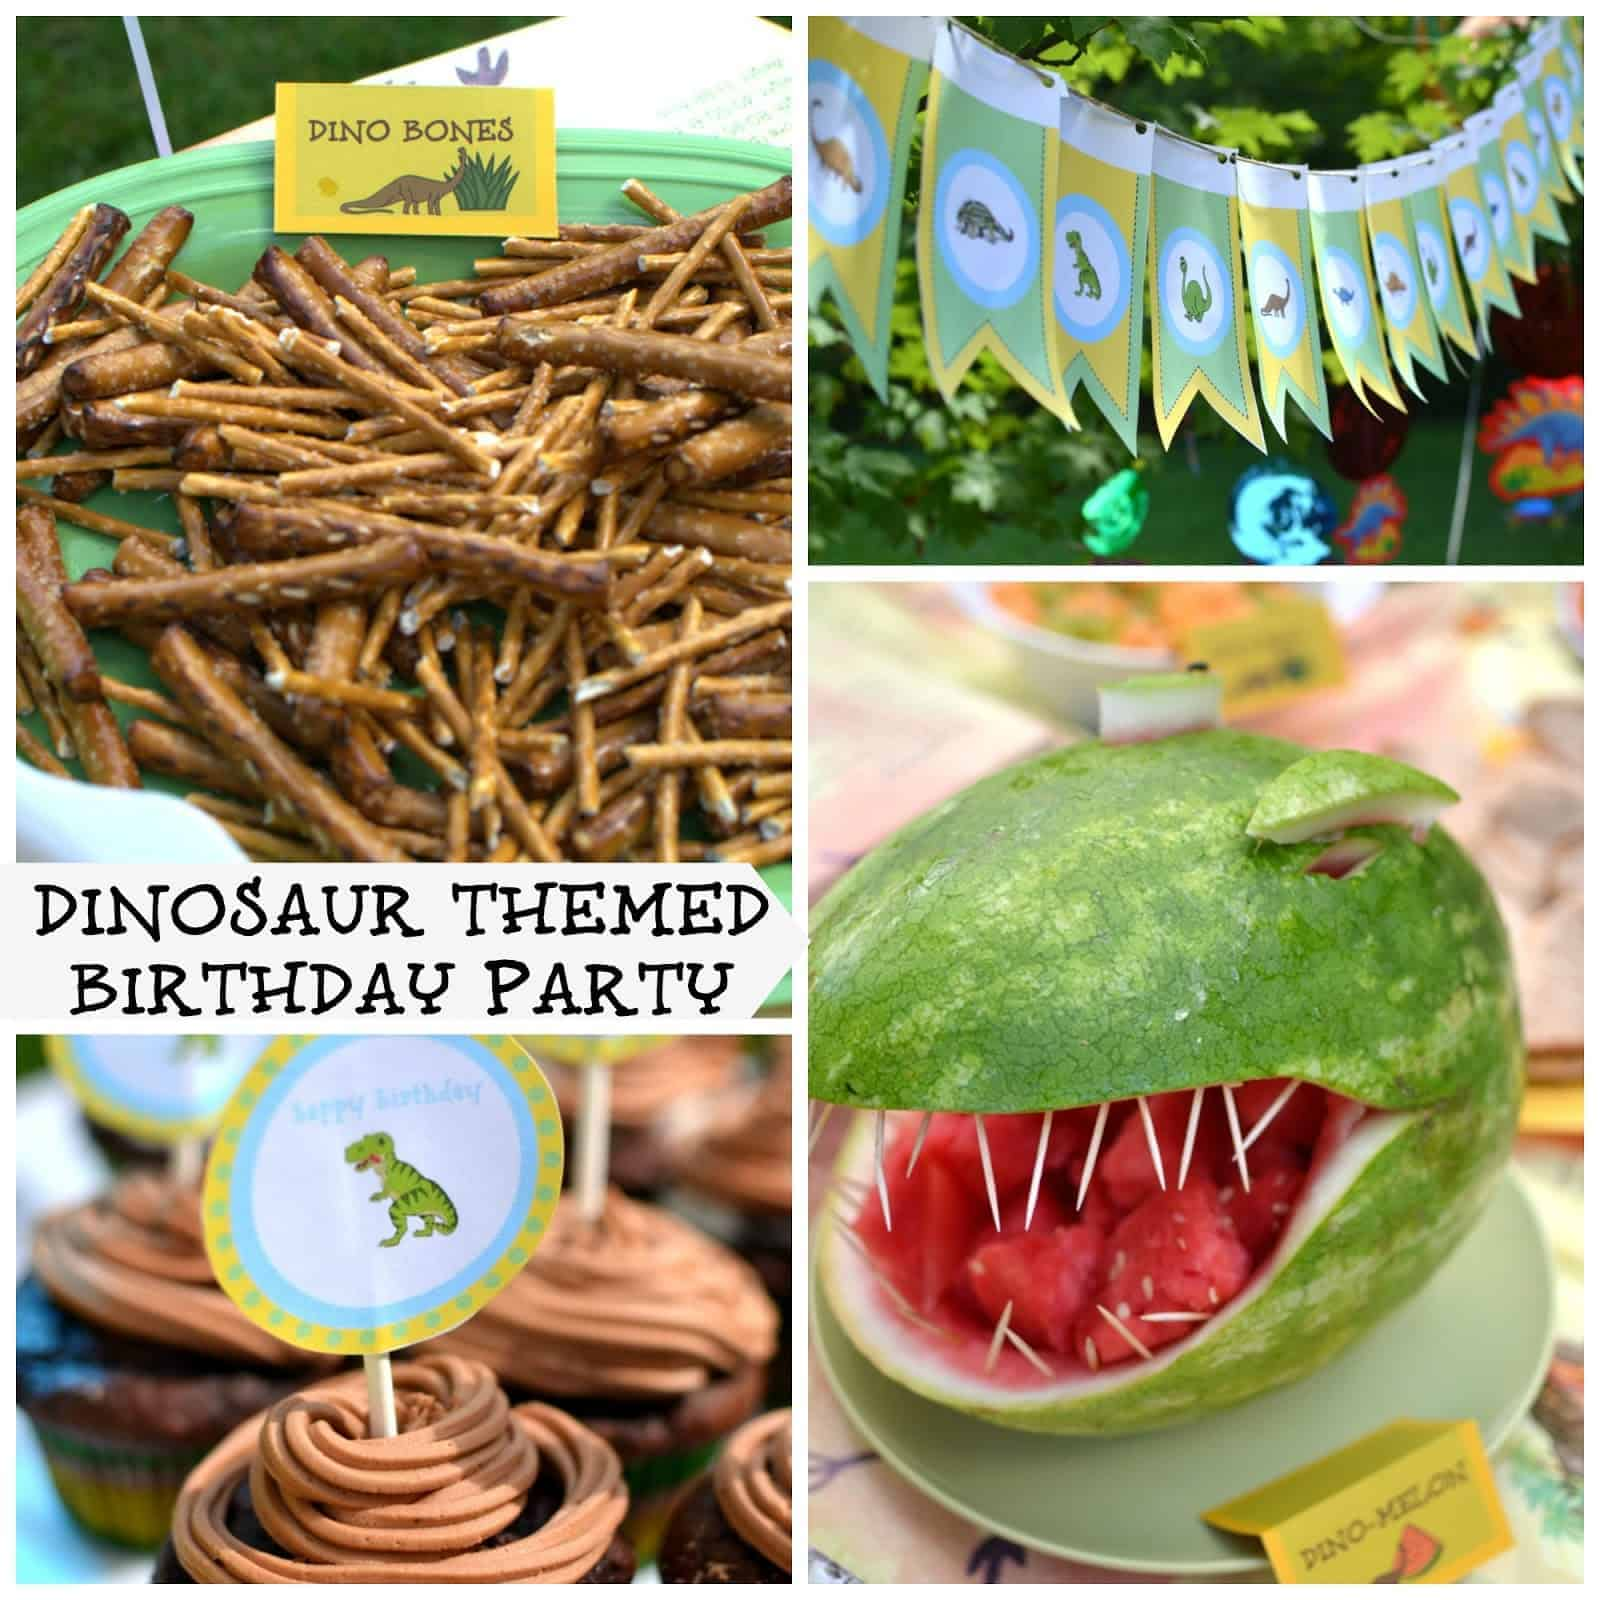 Dinosaur Birthday Party Ideas 7 Year Old Image Inspiration of Cake